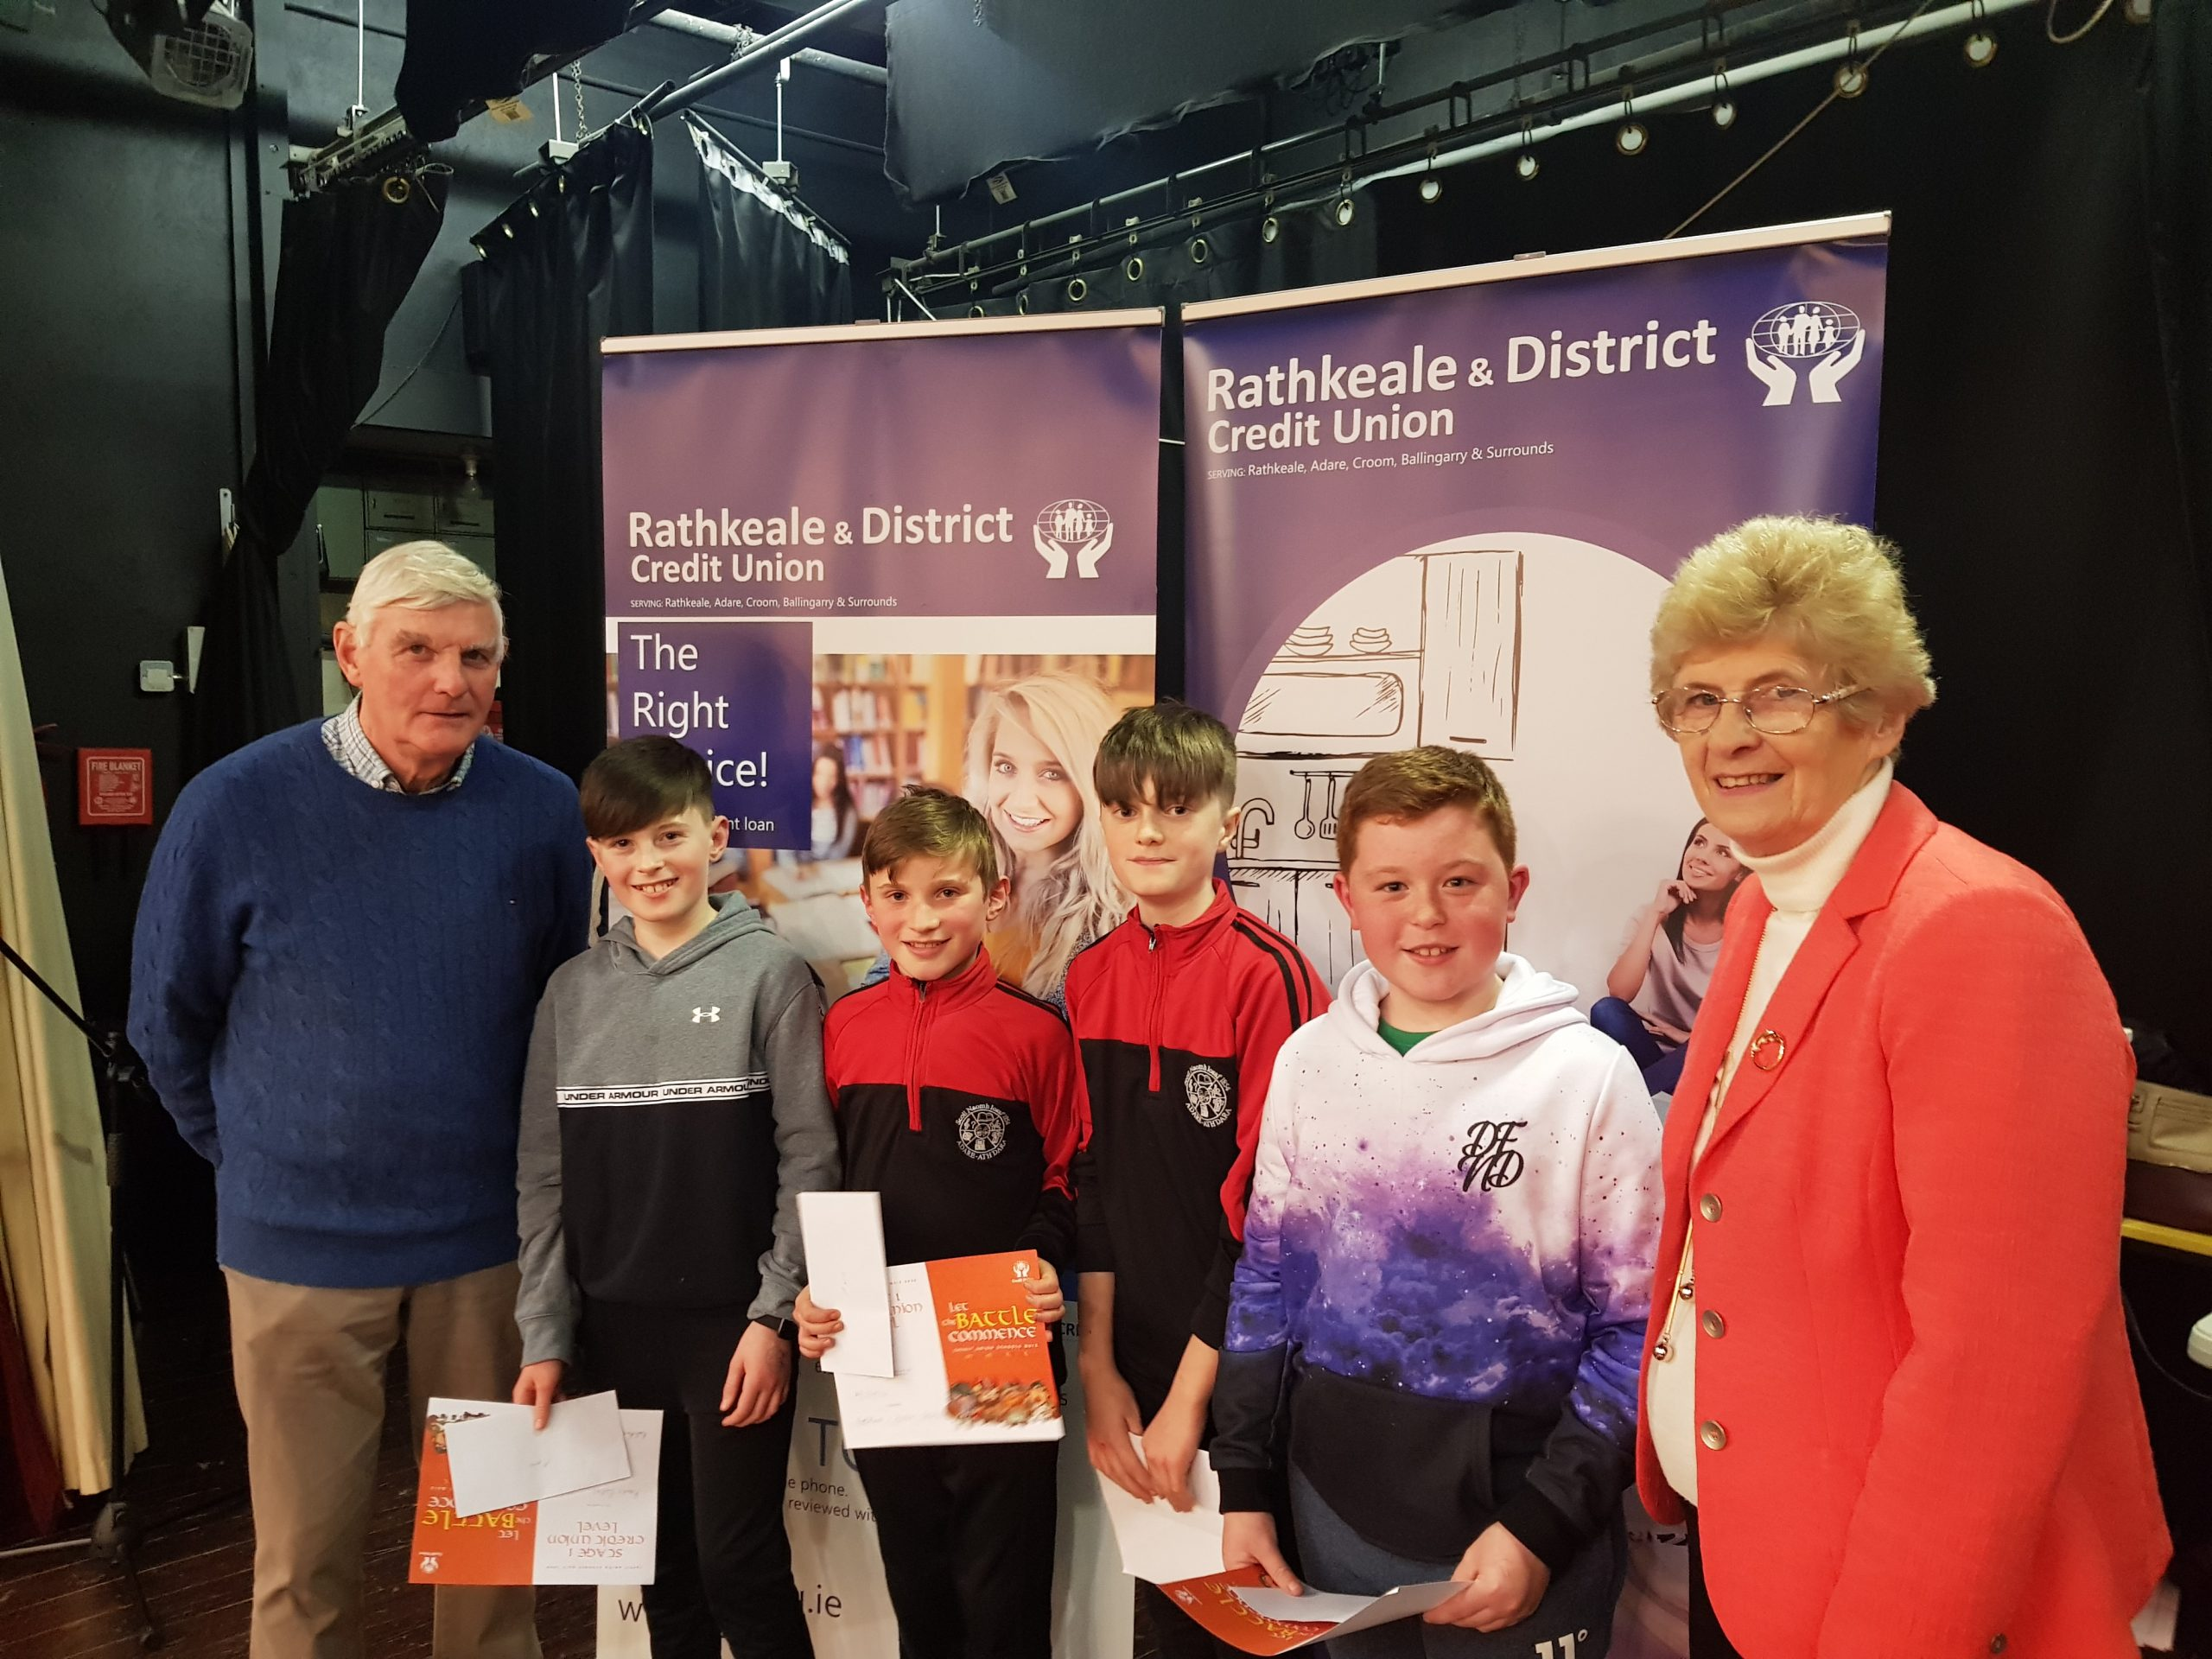 U11 Category 1st Place - Scoil Naomh Iosaf, Adare with Richard Naughton, Chairman and Kitty Guinane, Board Member